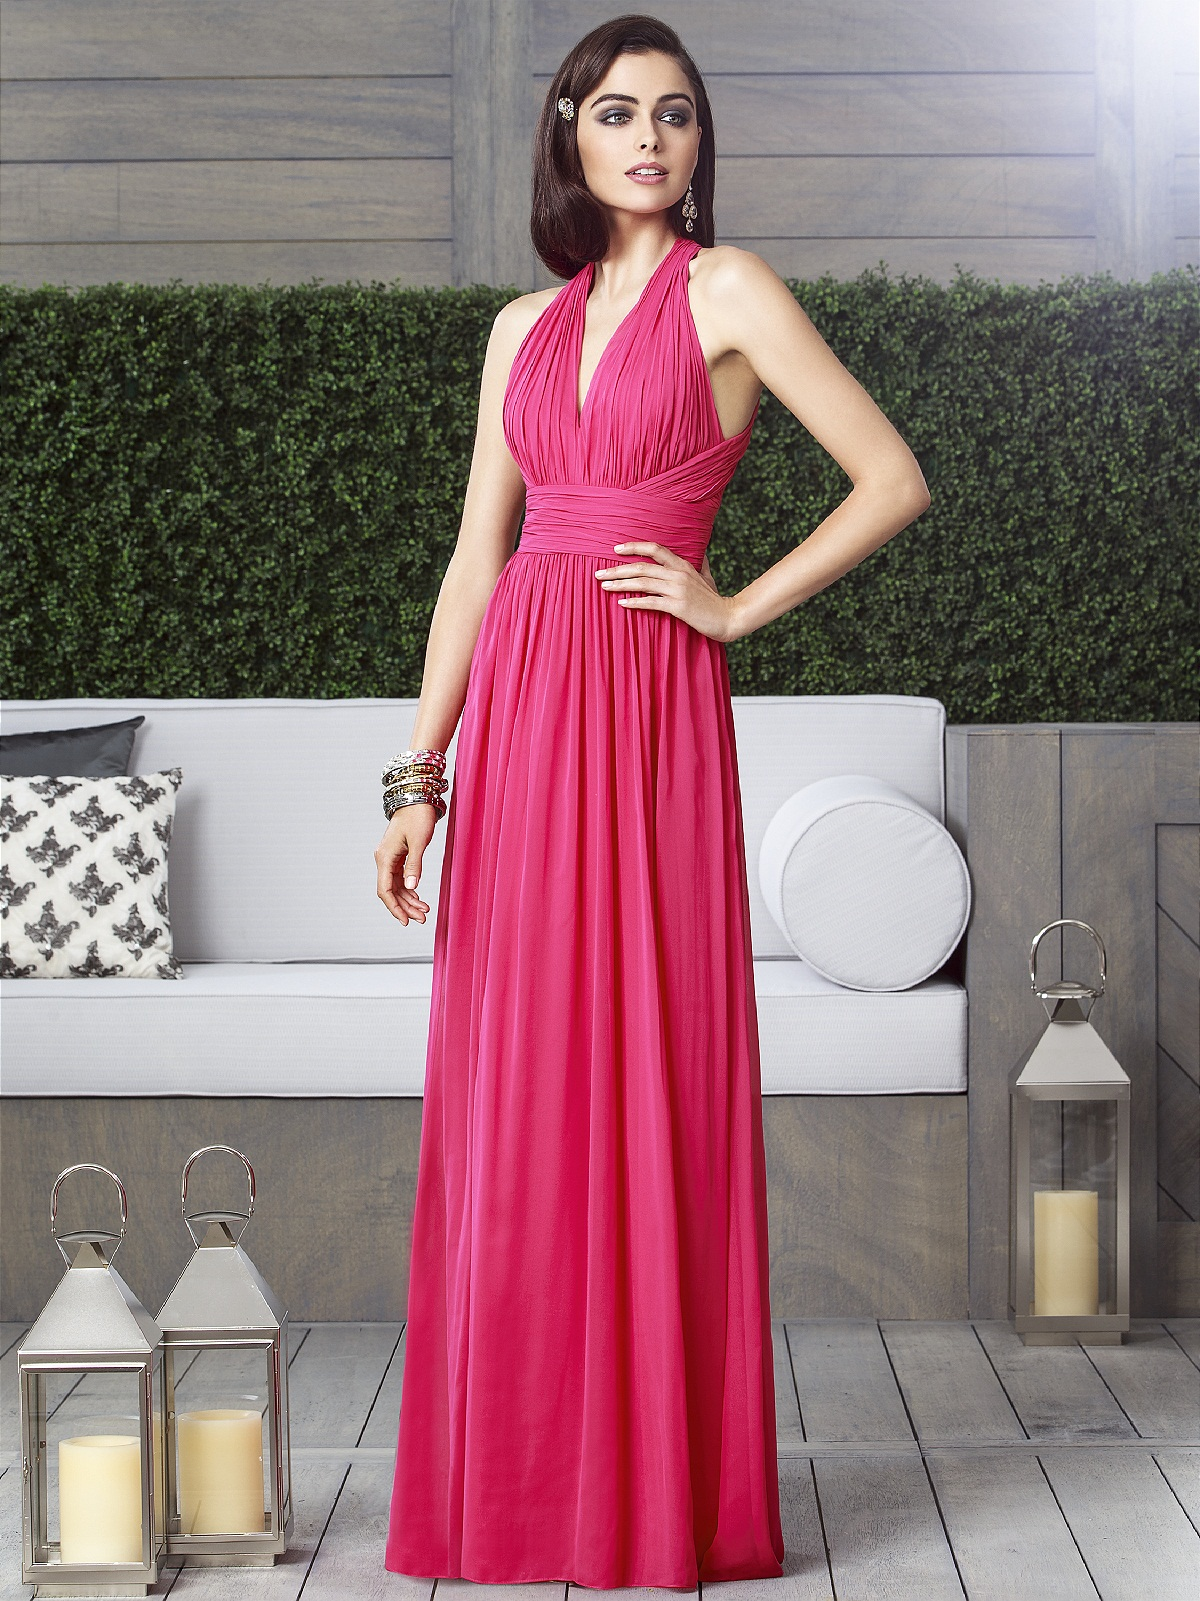 Dessy bridesmaid dressesdessy dresses 2908d2908the dessy group dessy bridesmaid dresses dessy 2908 loading zoom ombrellifo Gallery